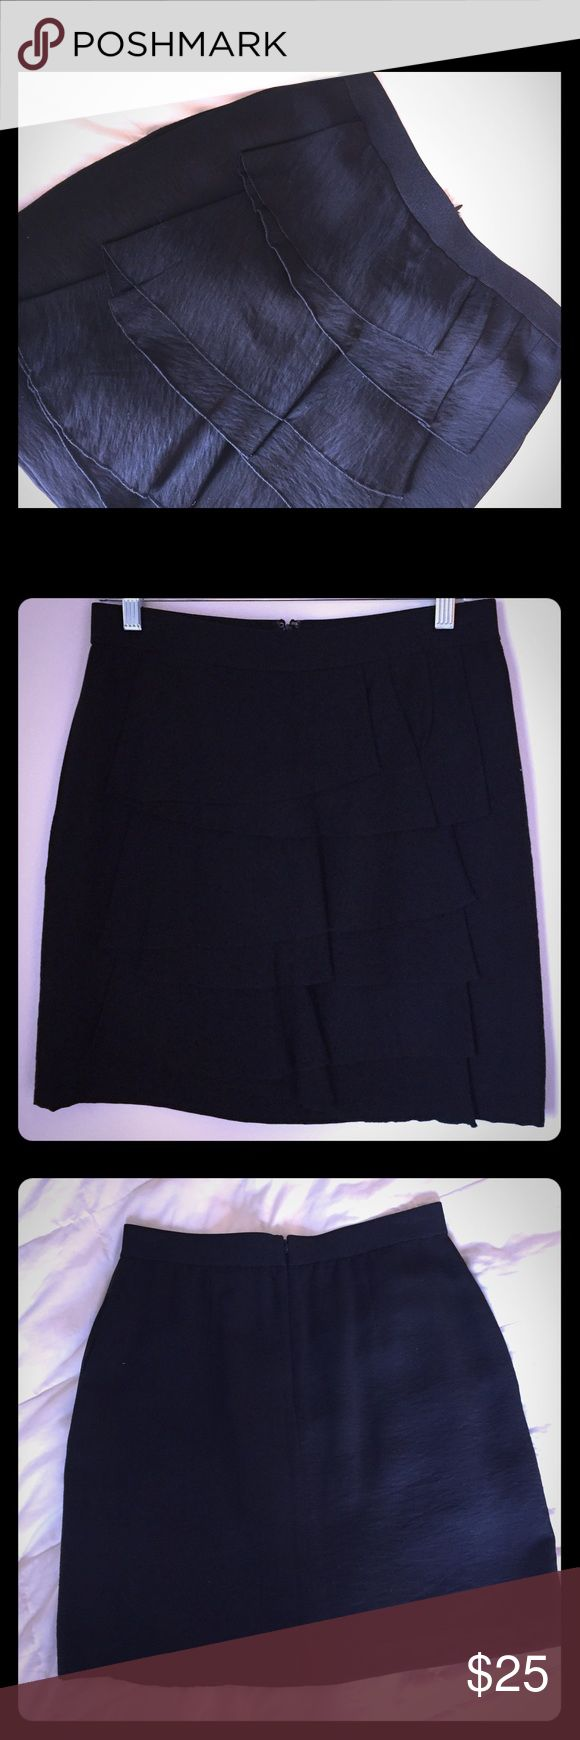 """Black BCBG Ruffled Mini Skirt Beautiful black BCBG Maxazria mini skirt. Front ruffle detail adds a simple pop to a classic black skirt. Has side pockets and a back zipper. 15"""" at the waist and 19"""" top to bottom. Excellent condition only worn a couple times. BCBGMaxAzria Skirts Mini"""